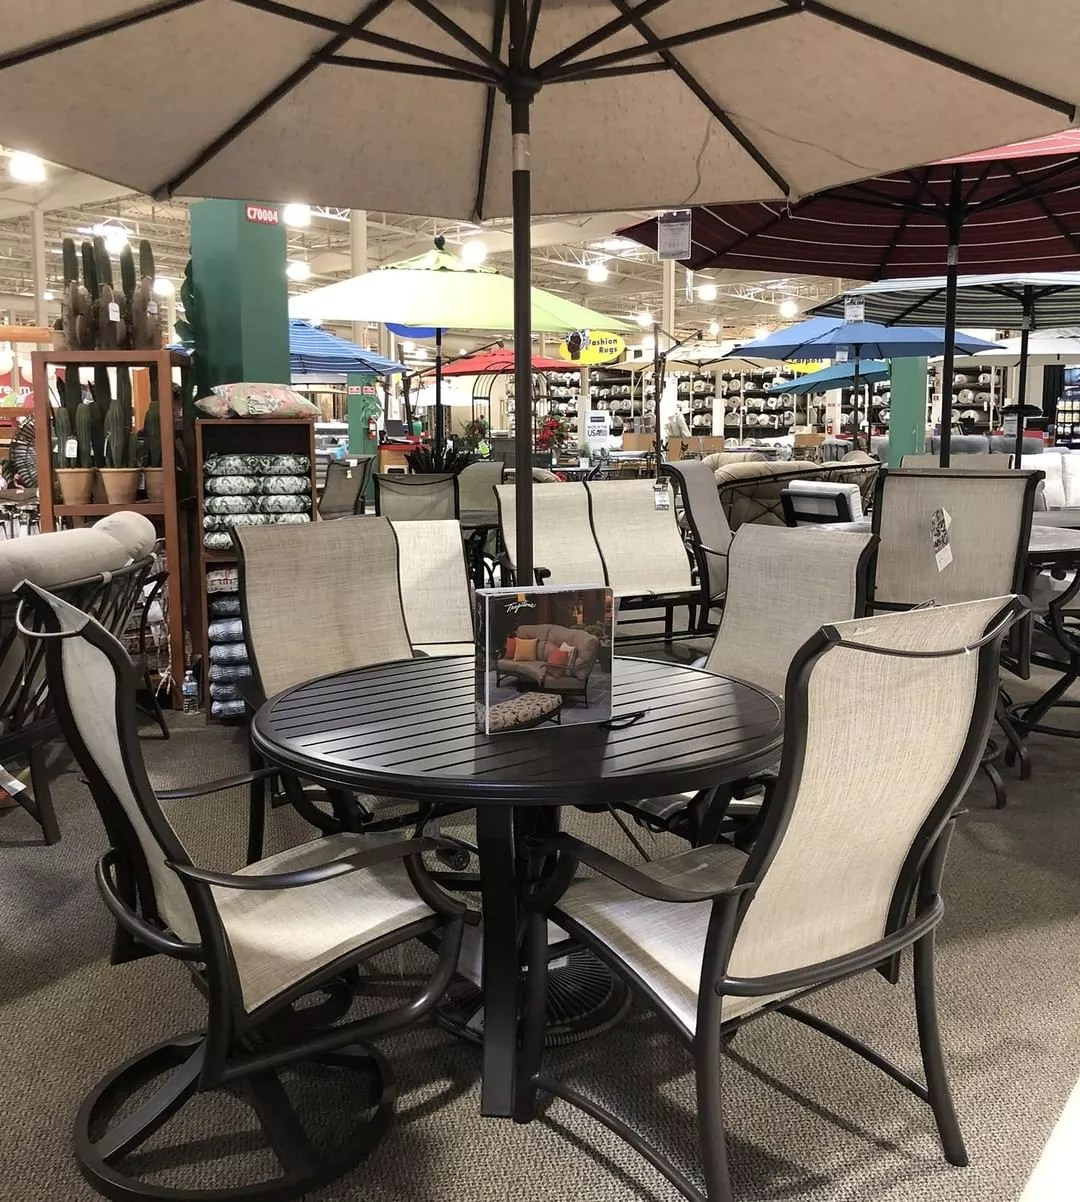 Outdoor patio dining set at Nebraska Furniture Mart. Photo by Instagram user @nfmpics